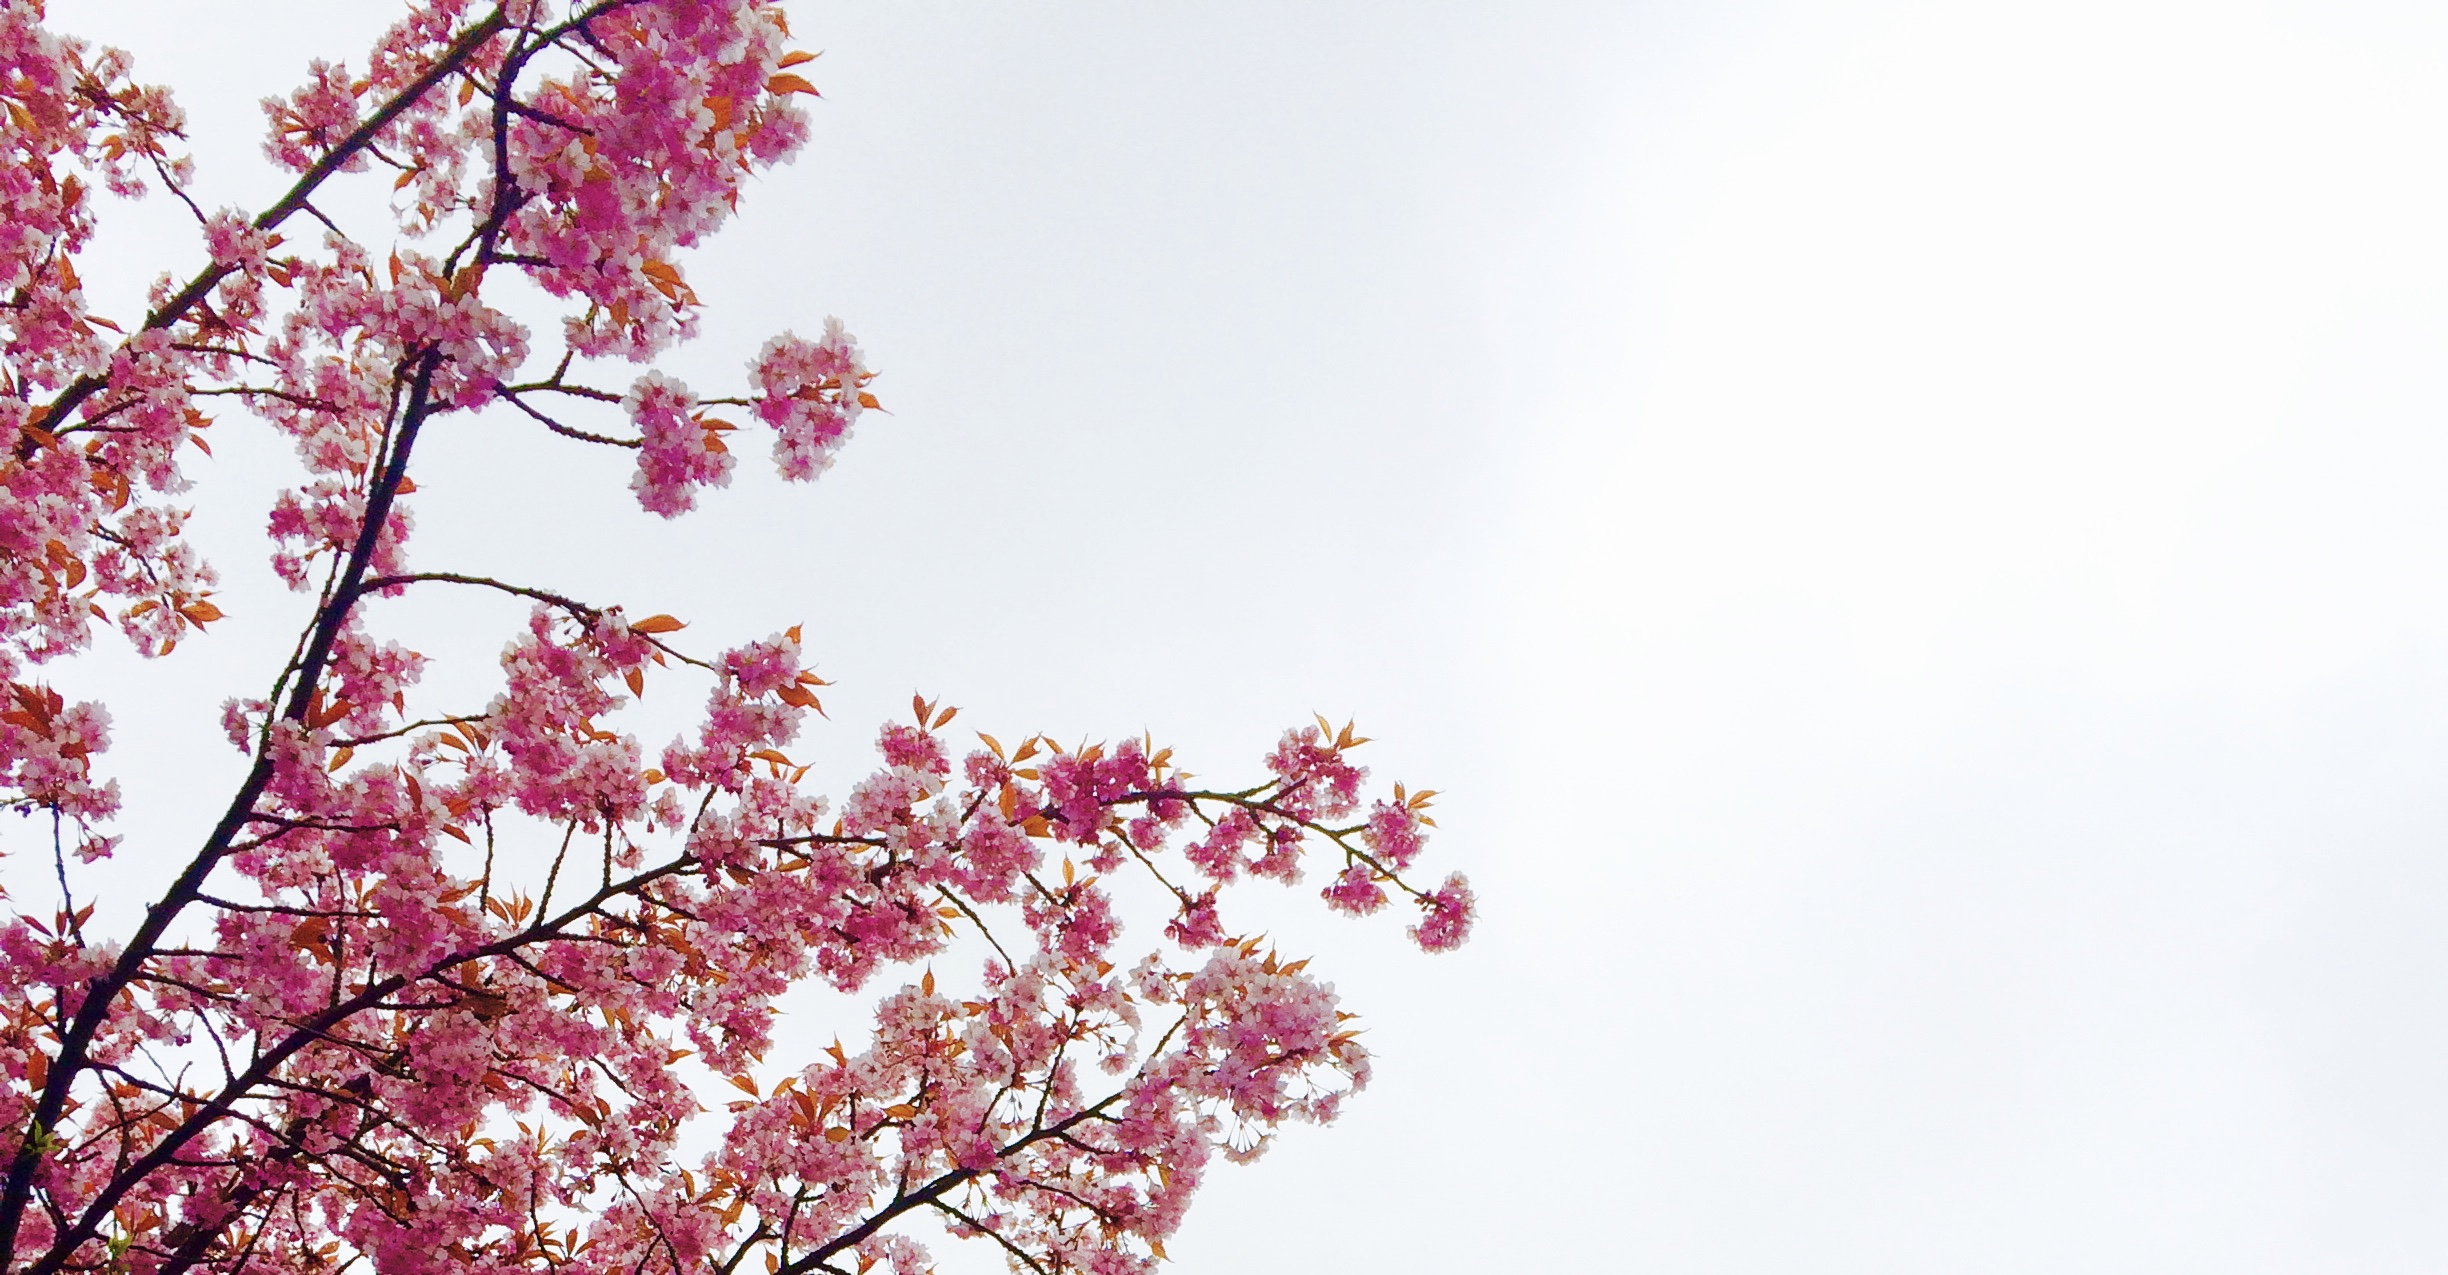 Cherry blossom tree free stock photo Cherry blossom pictures